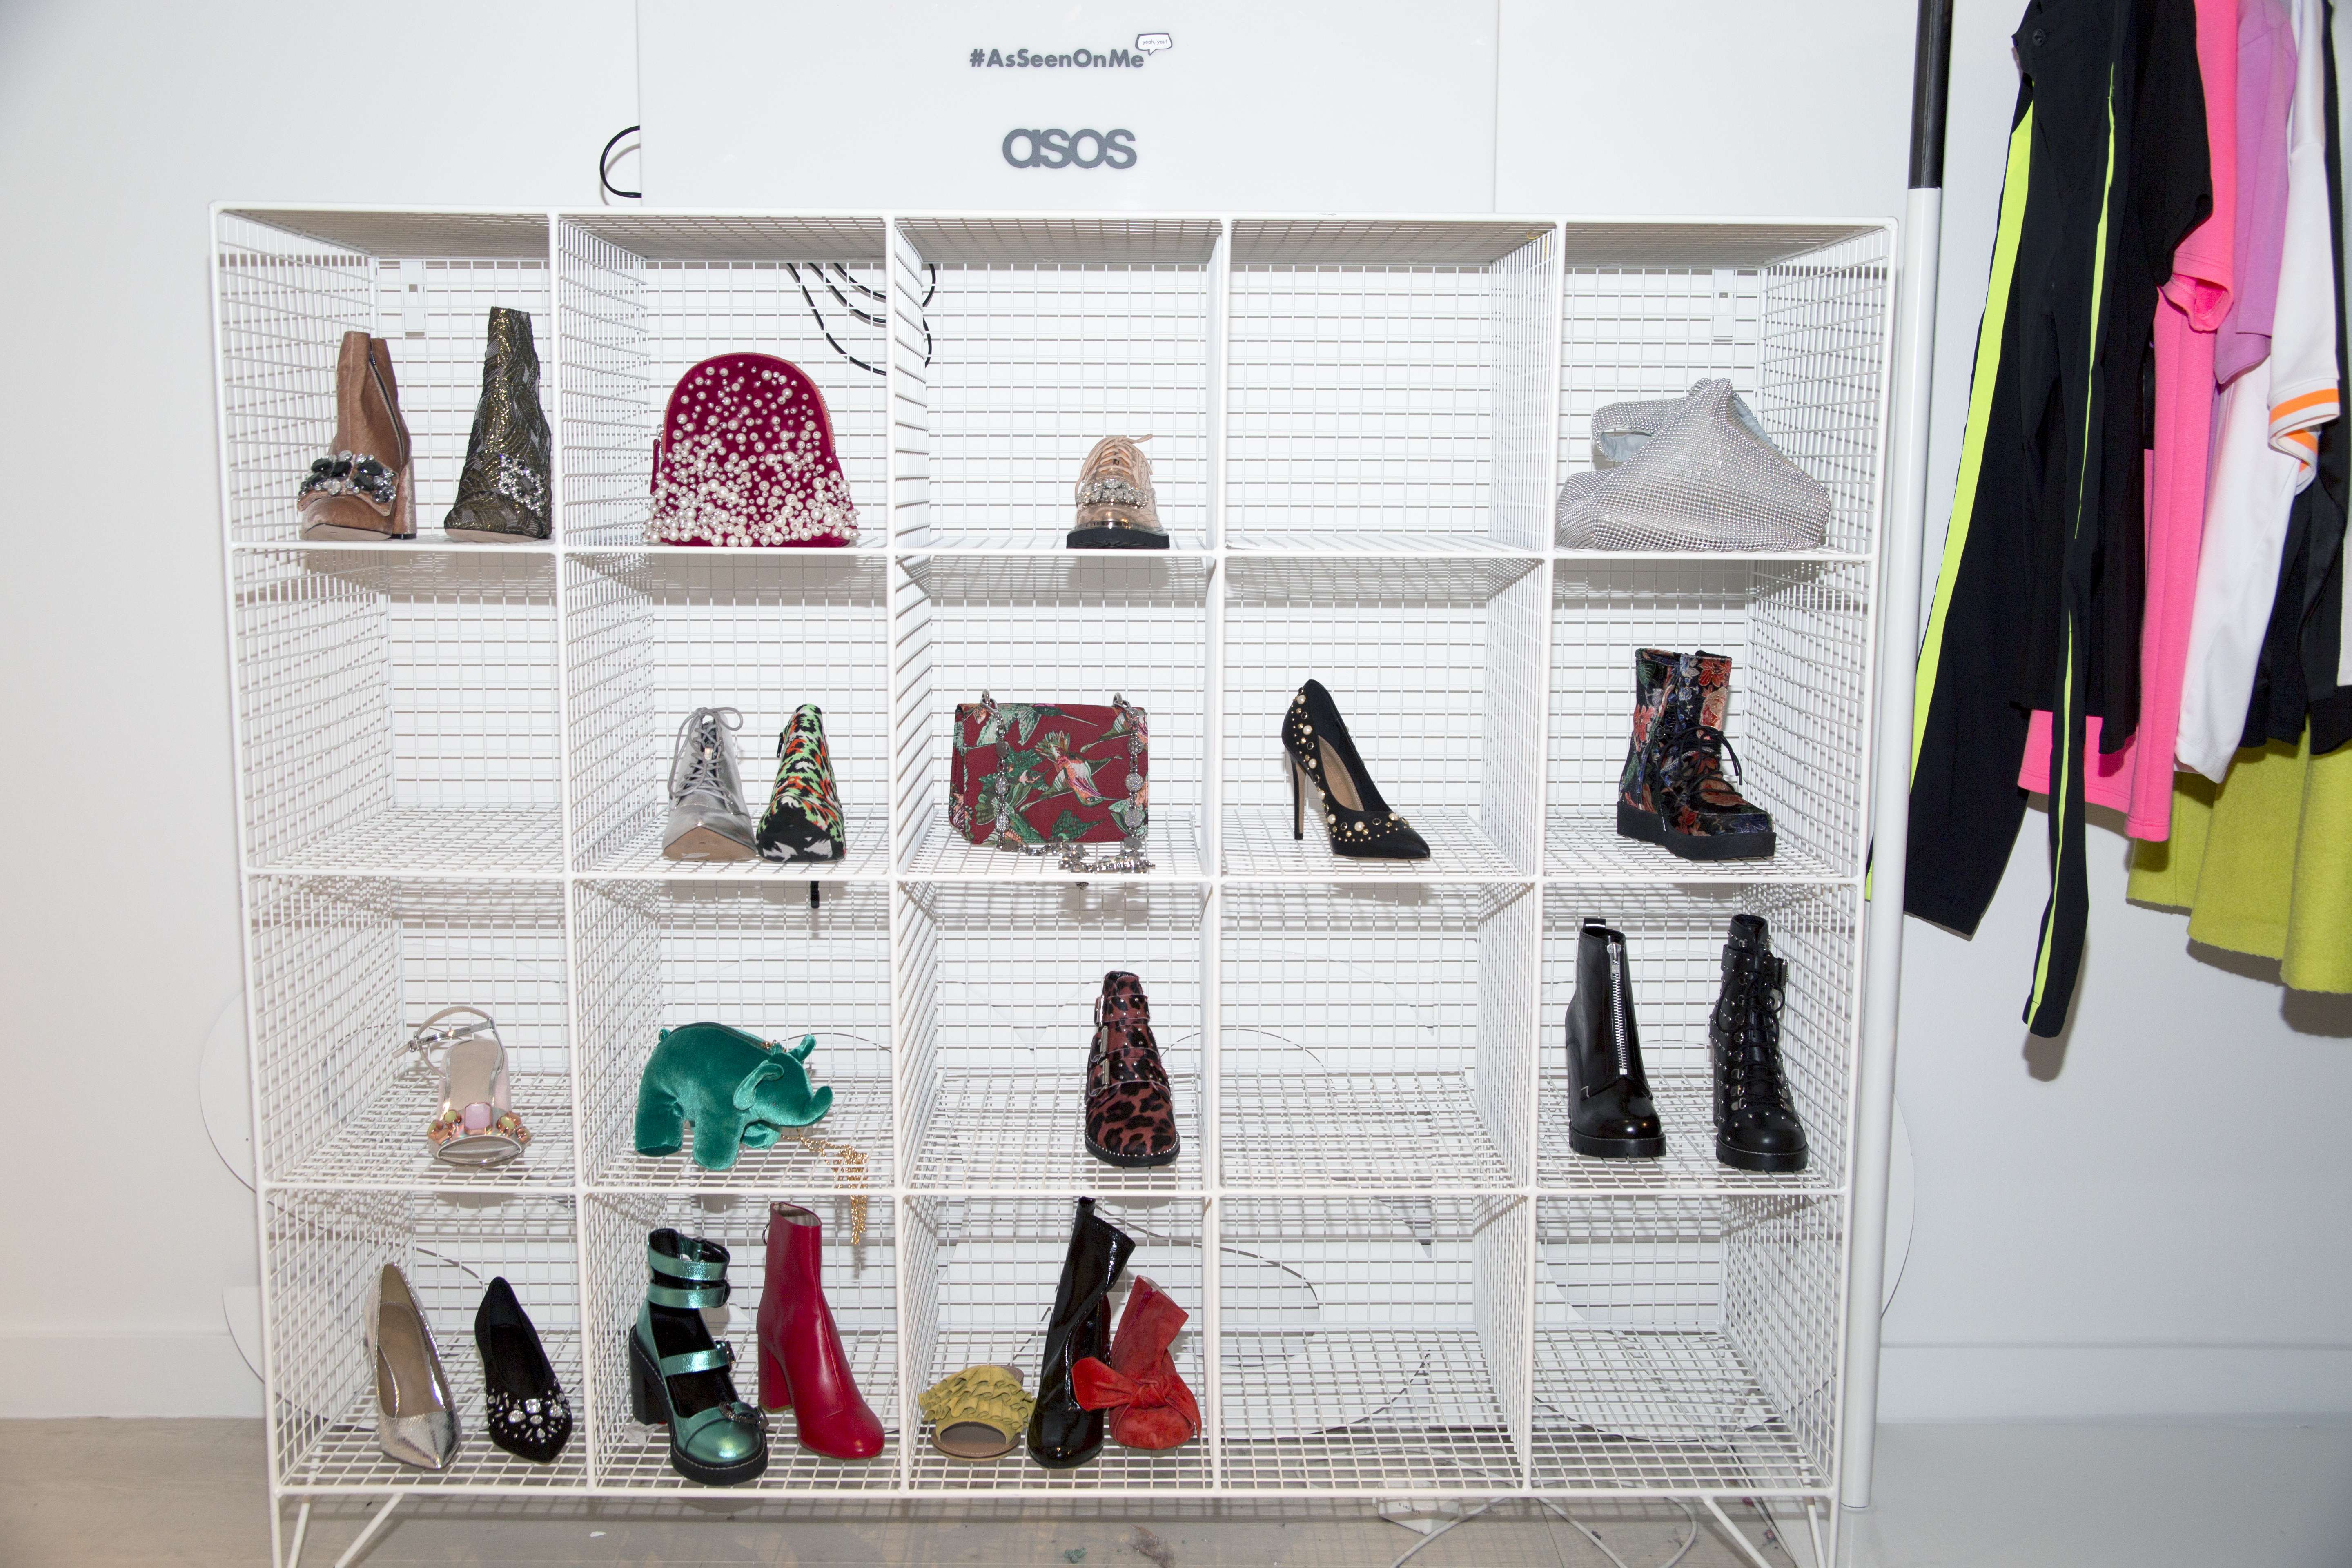 Cubbies with shoes and bags at ASOS headquarters.